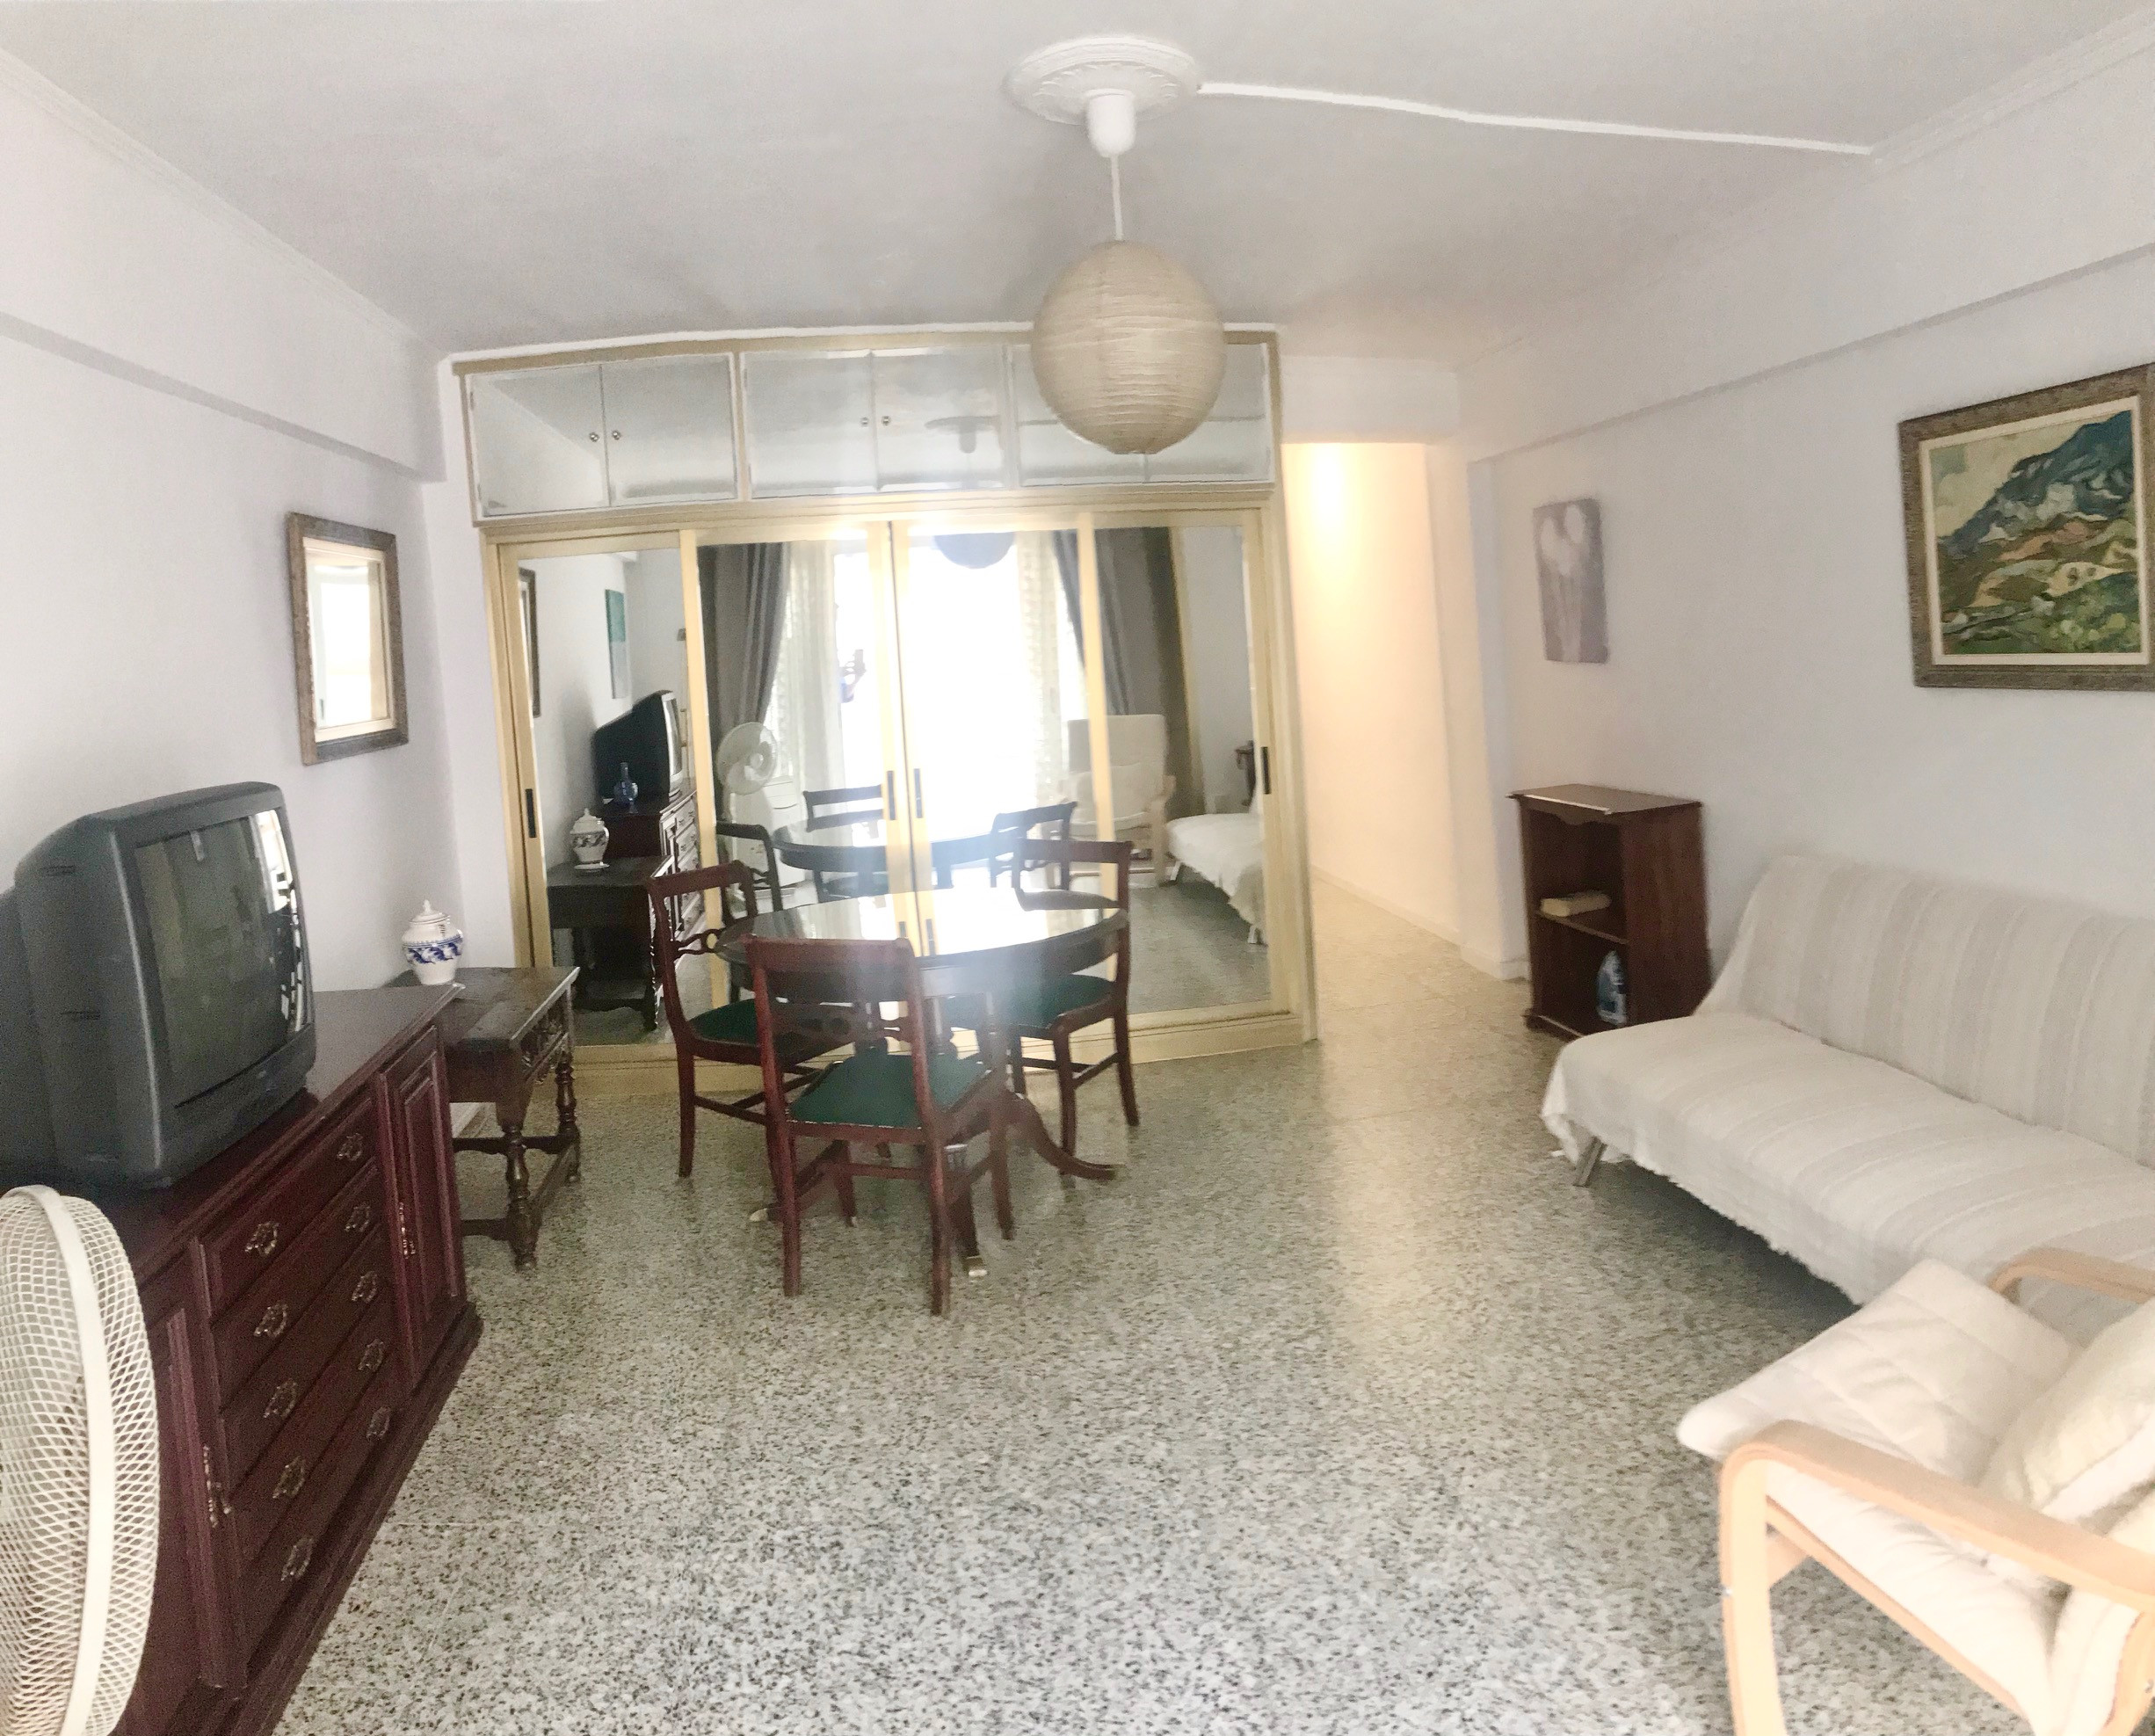 R514 GREAT APARTMENT IN OLD TOWN - Apartments in Benidorm